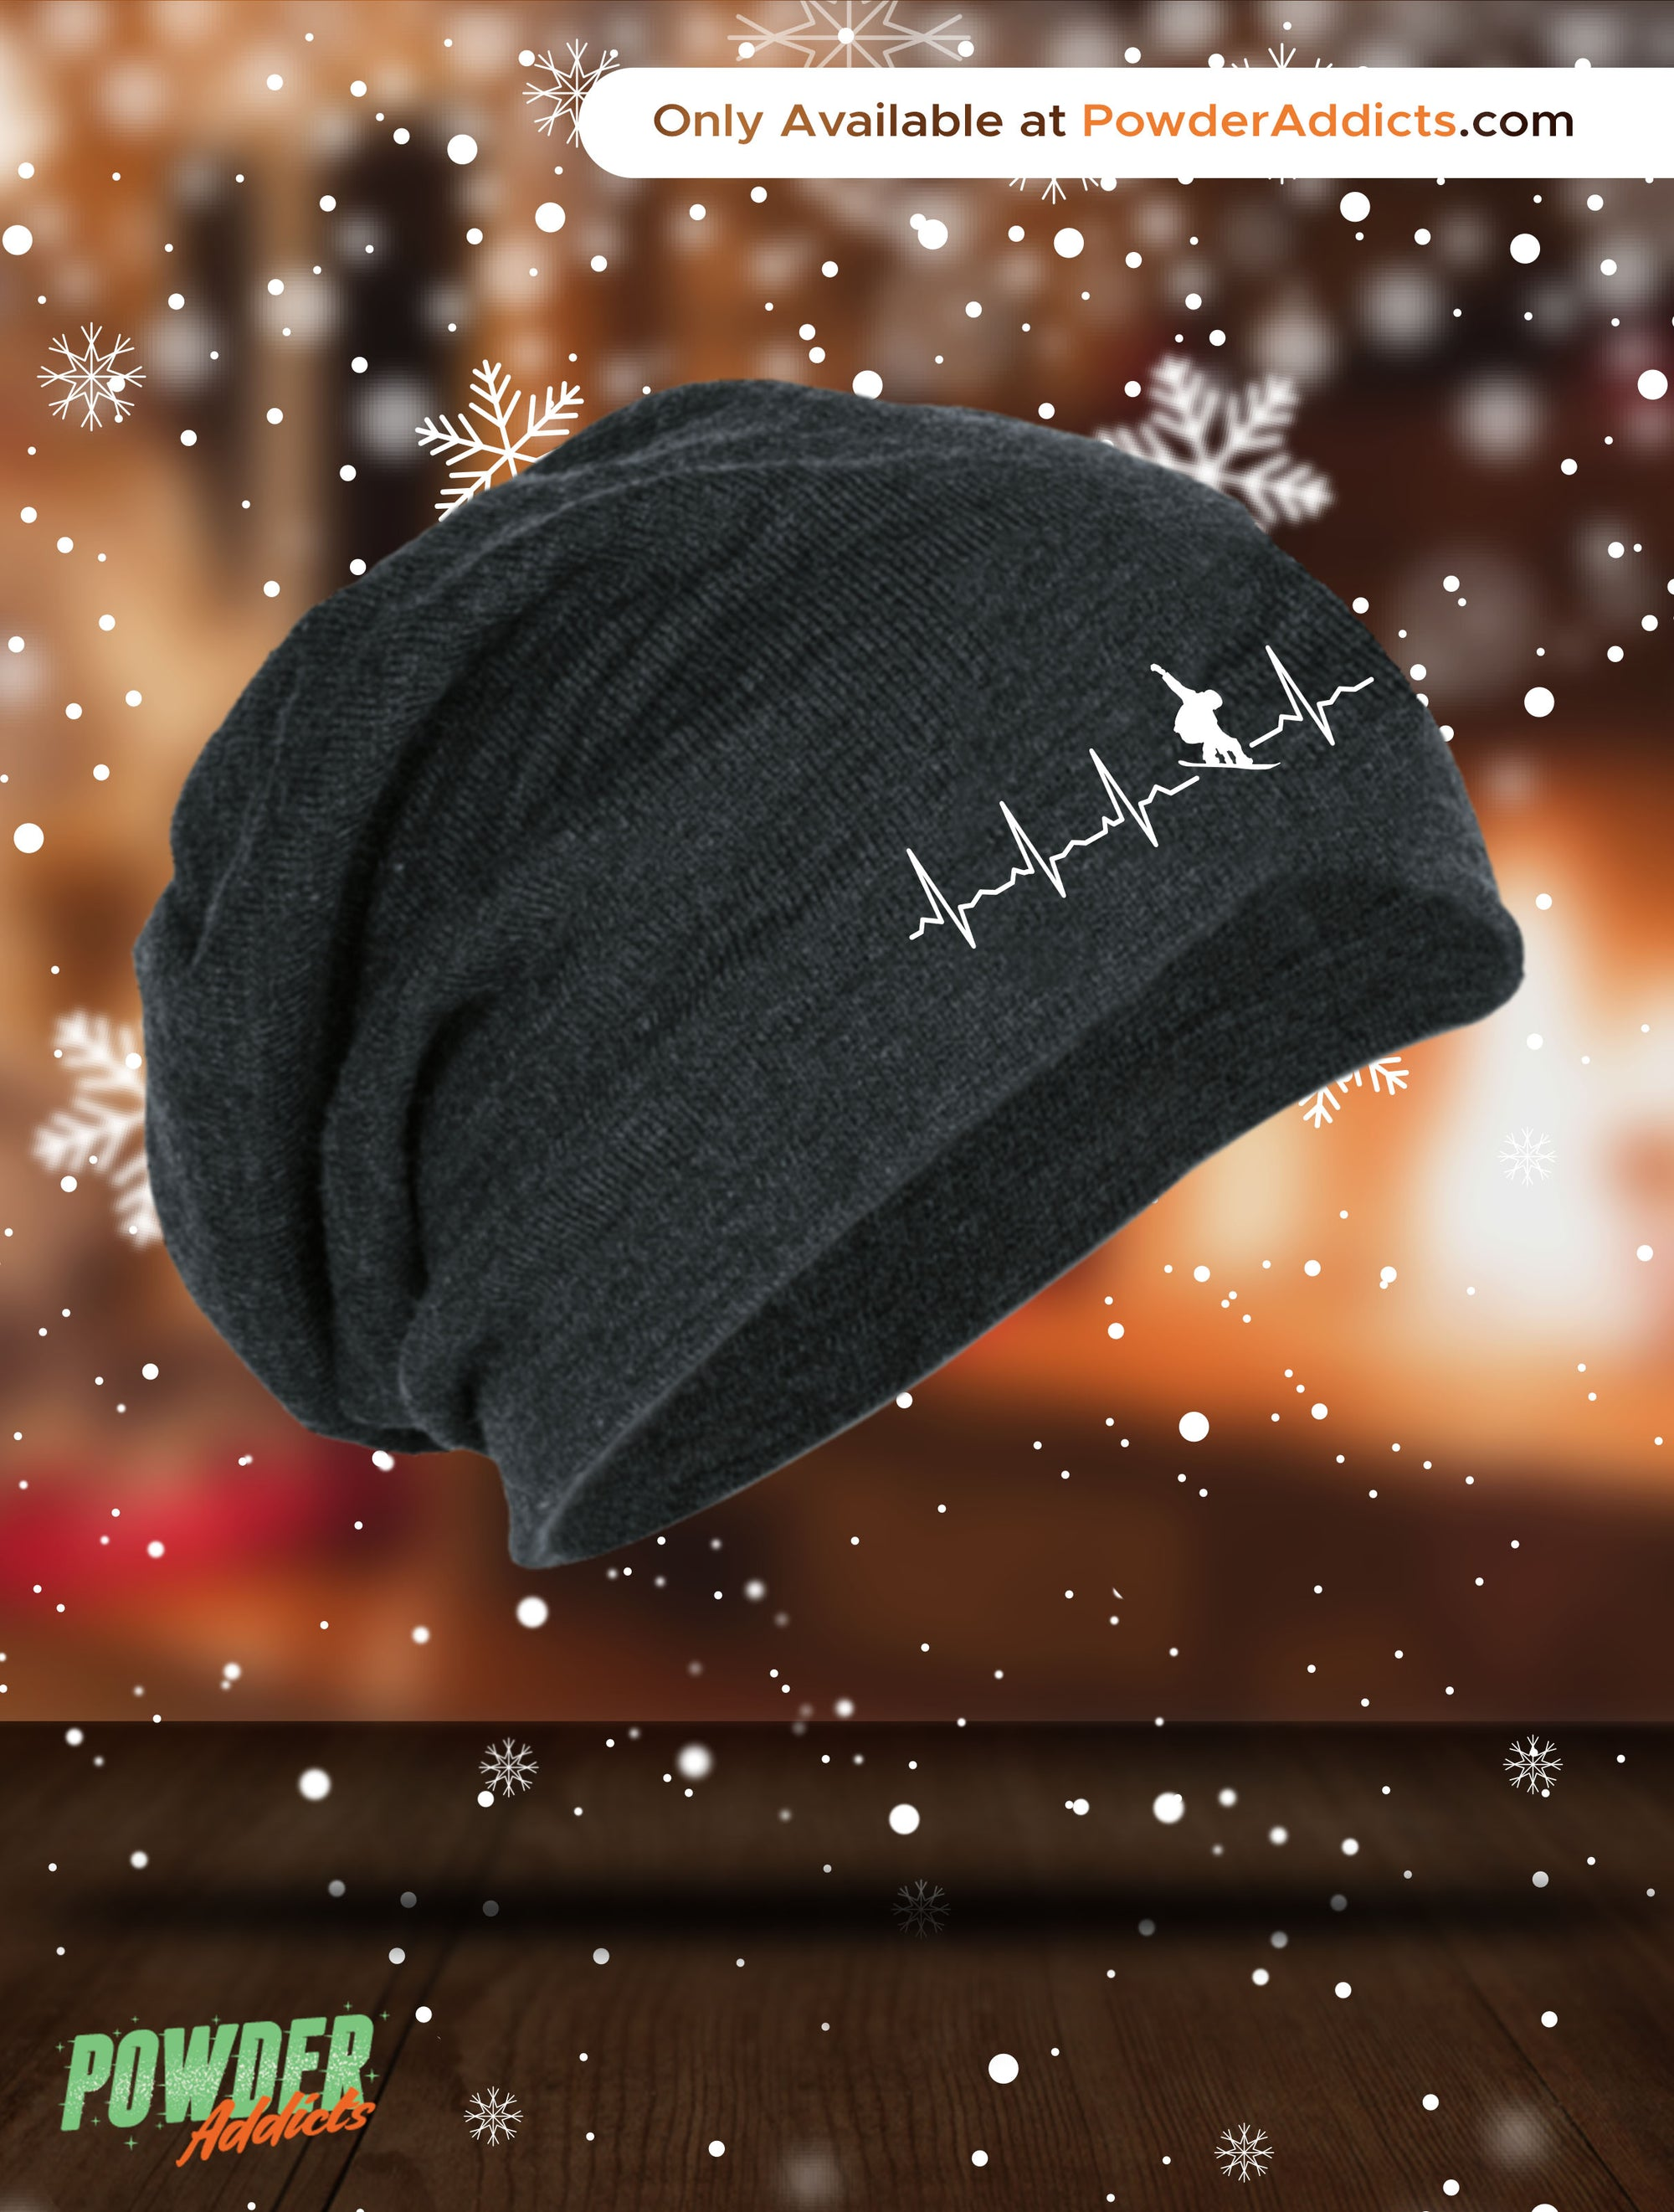 Snowboard is My Heartbeat Slouch Beanie - Powderaddicts